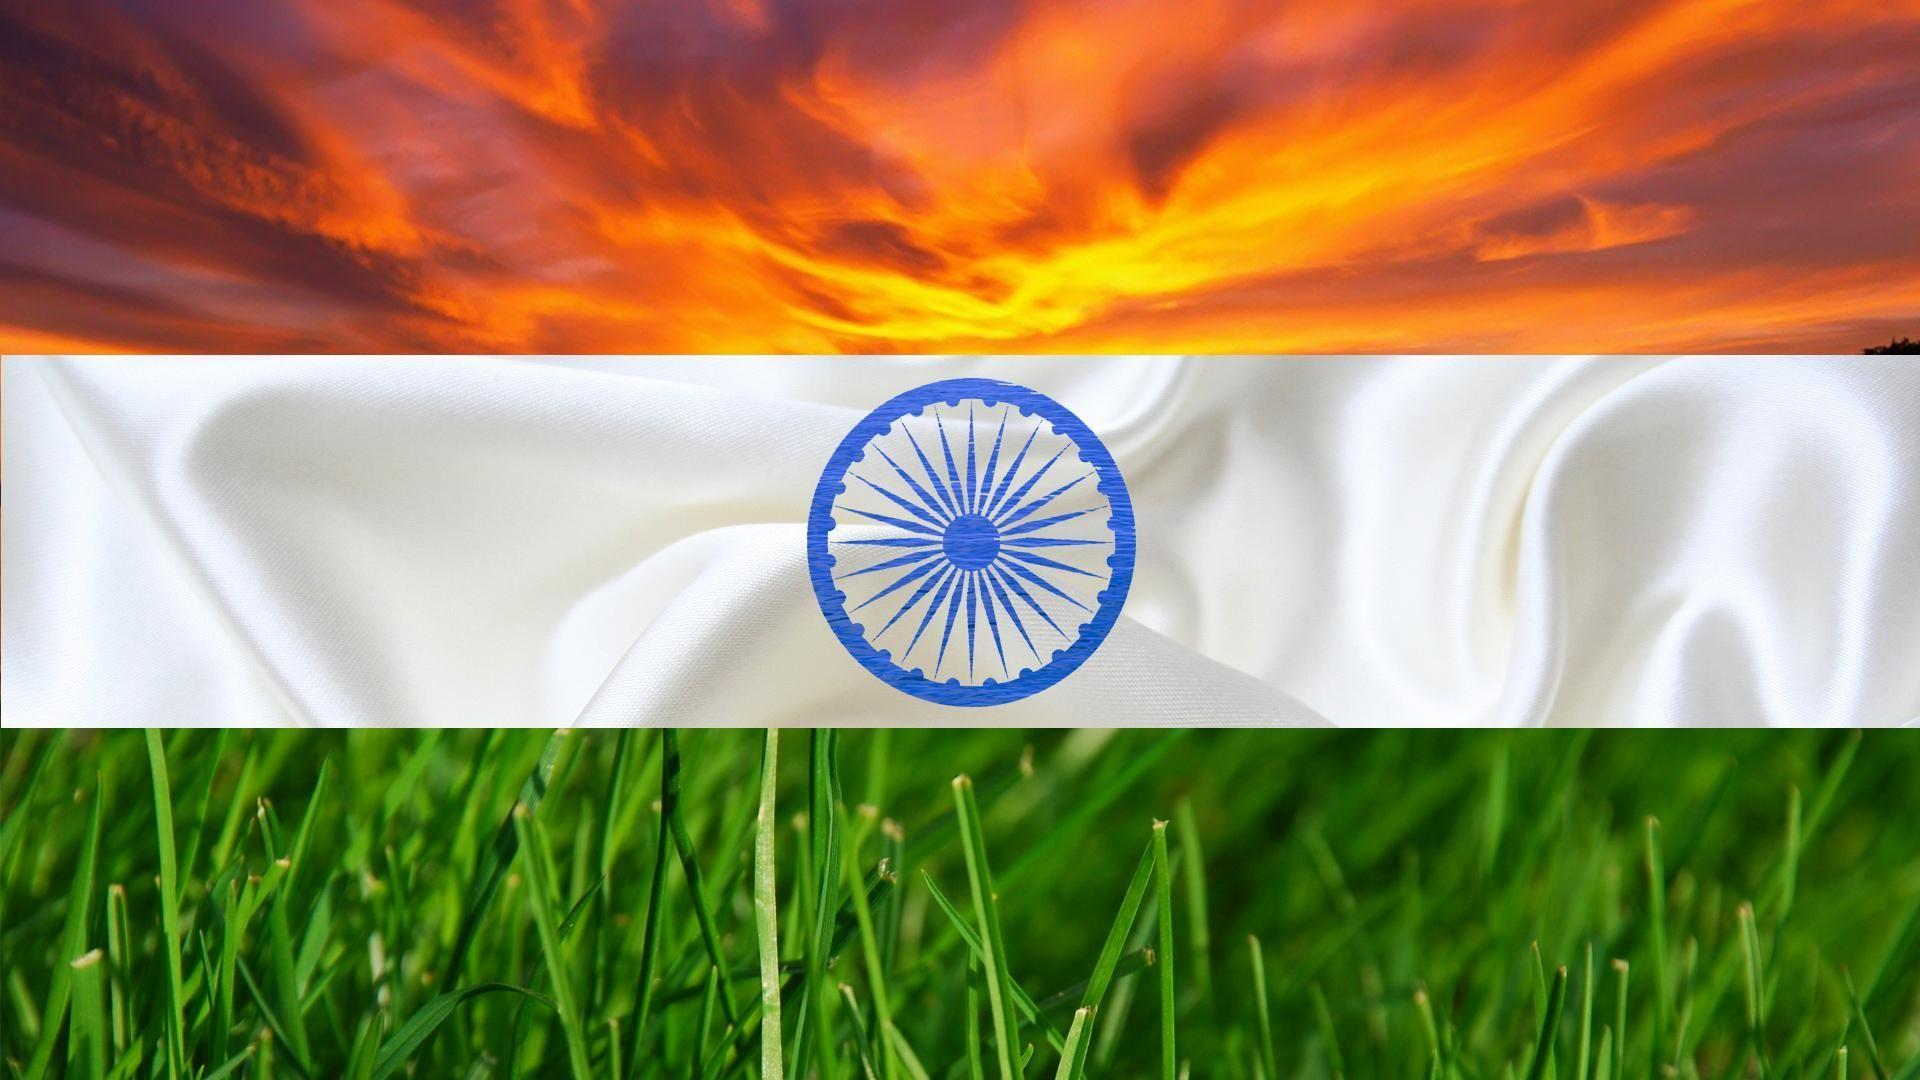 Indian Flag Hd Nature: Indian National Flag HD Wallpapers